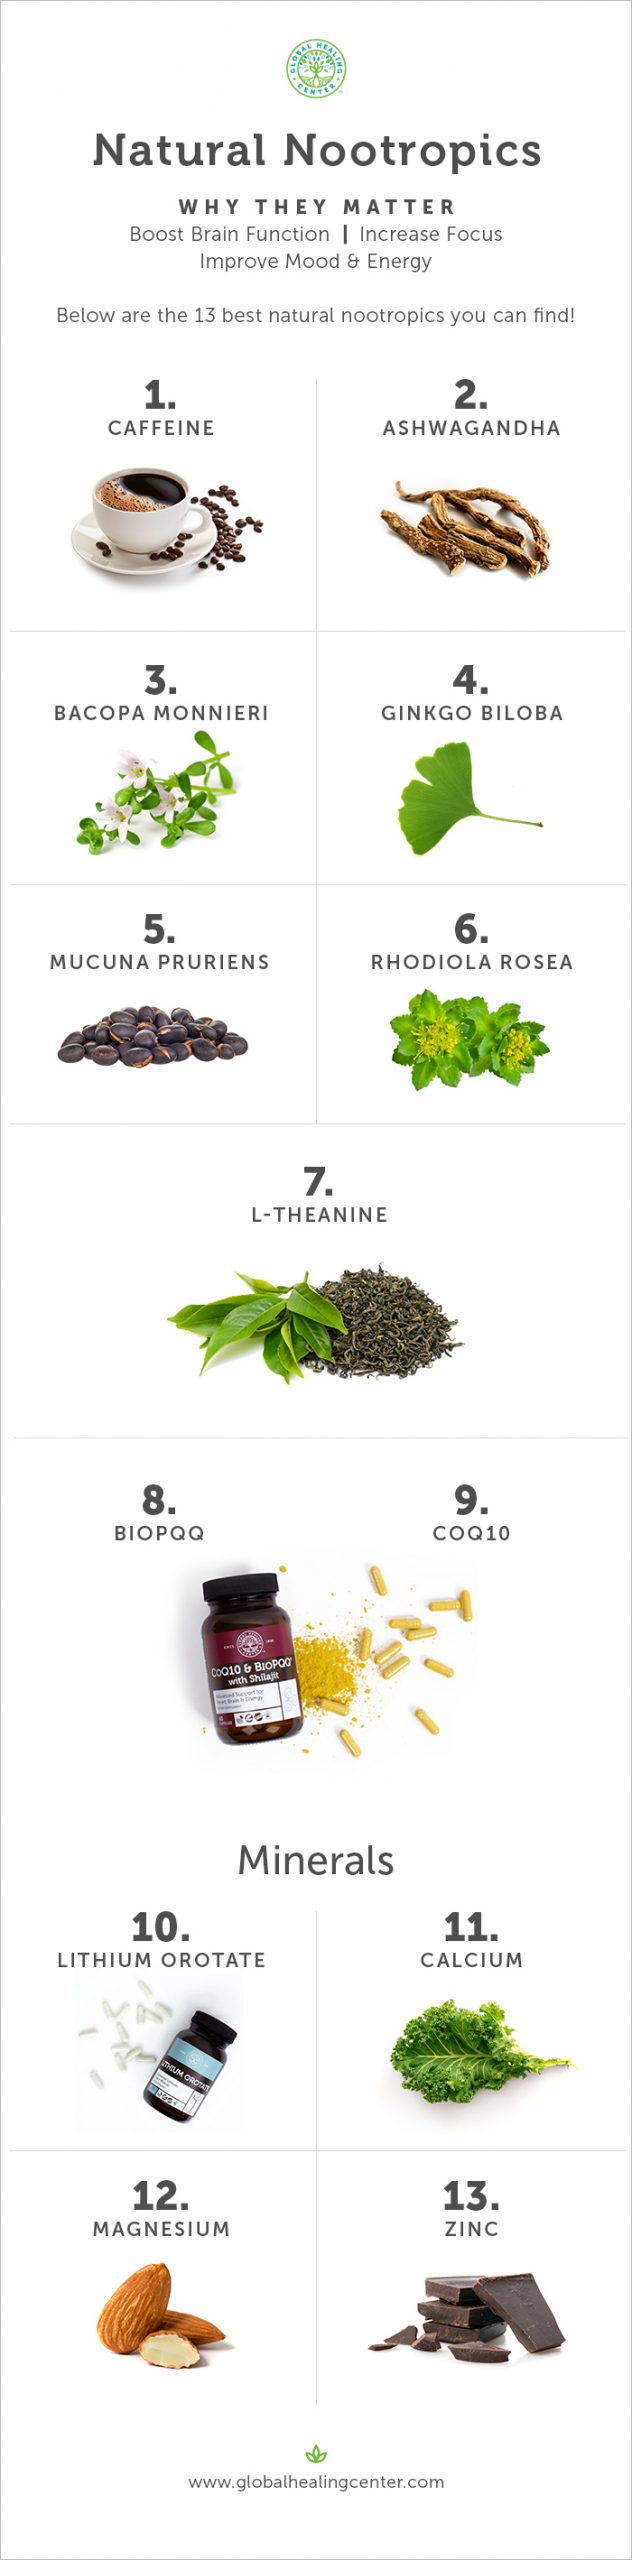 nootropic-supplements-infographic-scaled